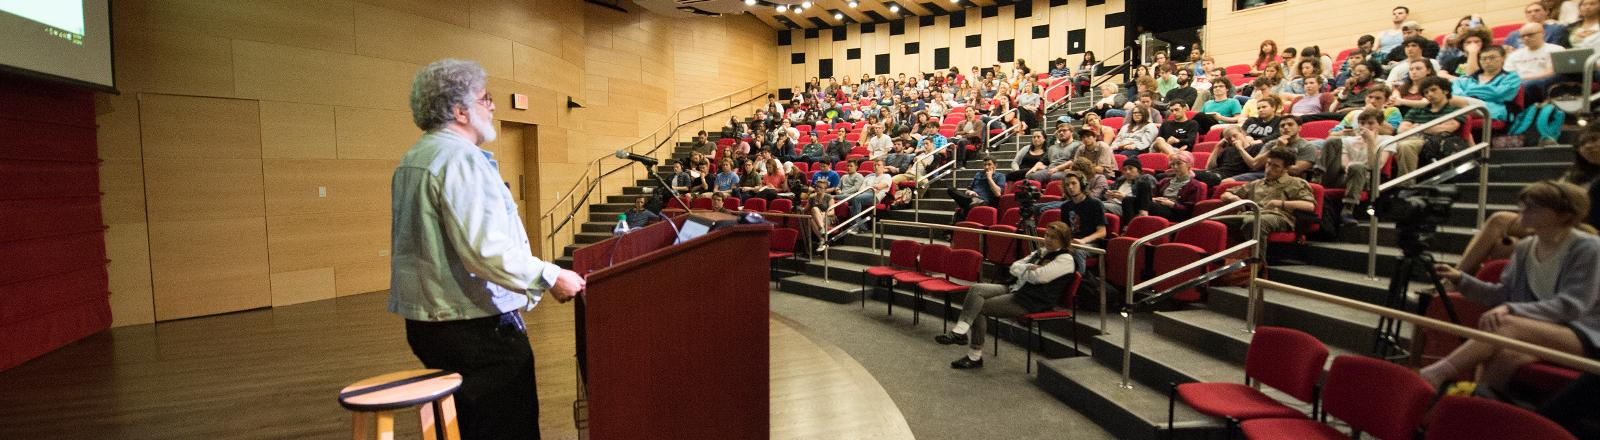 Loyola professor giving a lecture to students in Nunemaker hall